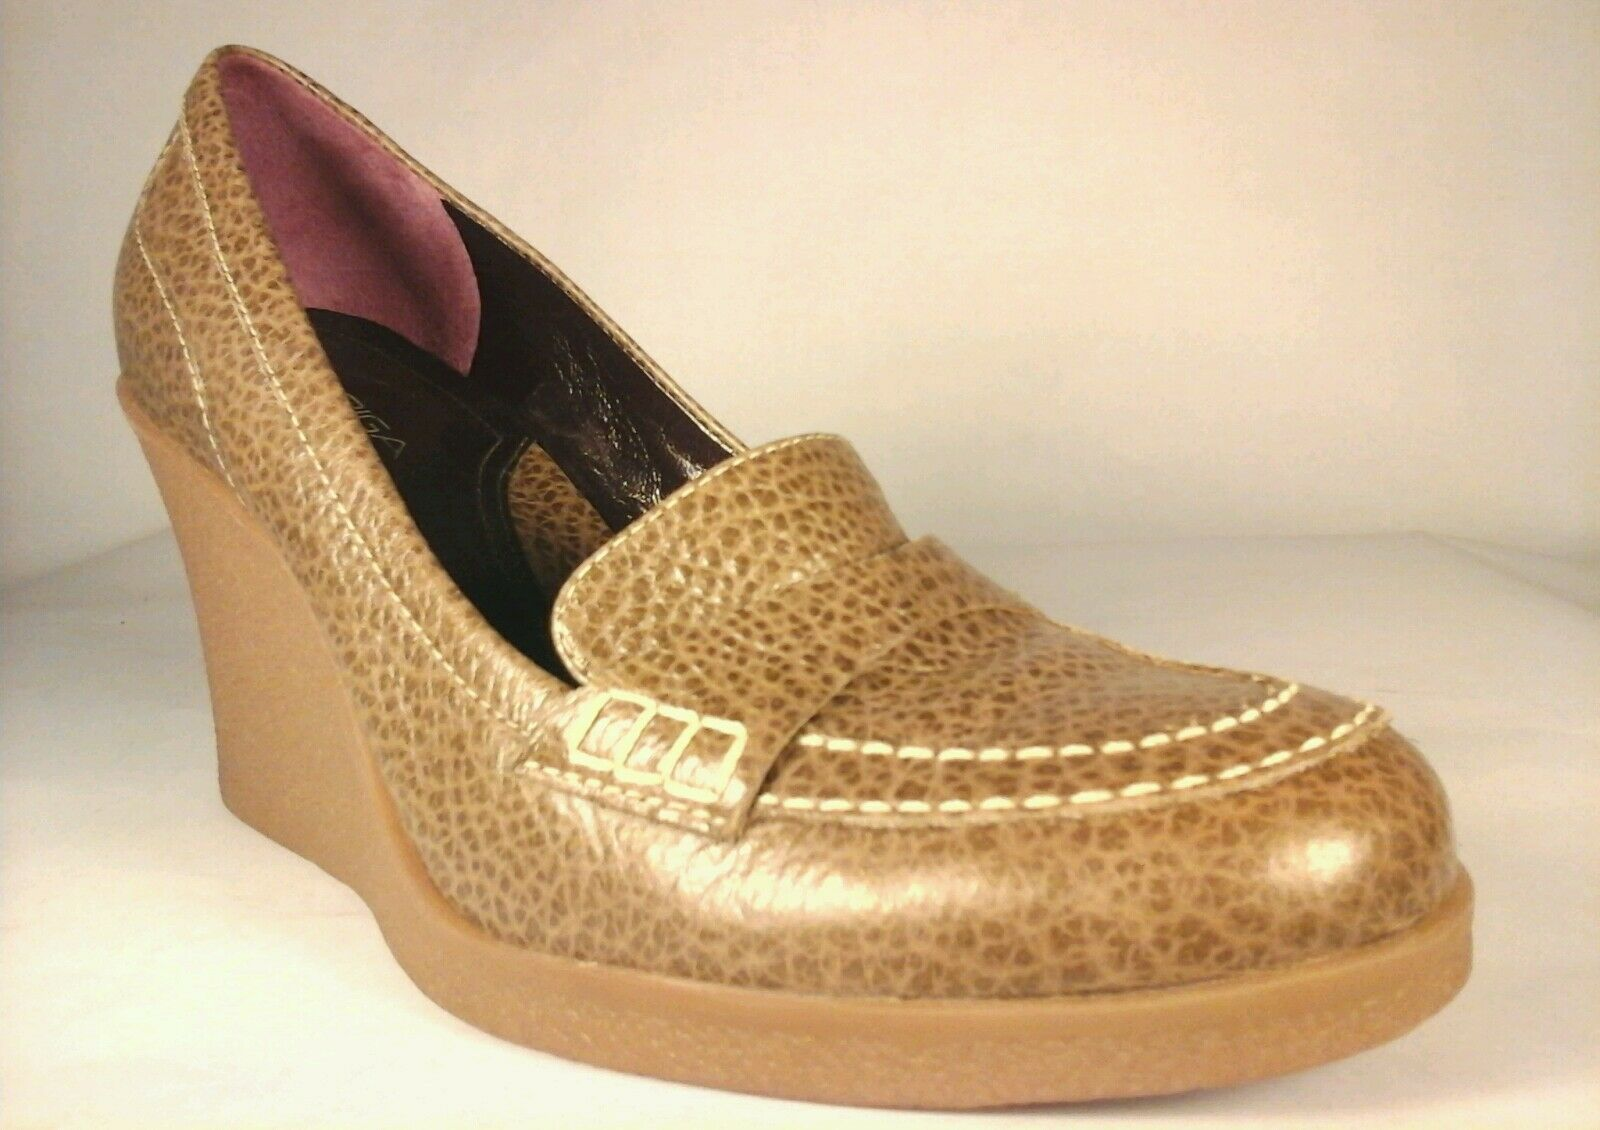 VIA SPIGA Wedges Loafers Taupe Leather Brown Leather Taupe Platform Shoes Women's US 6.5 $195 5f54dc